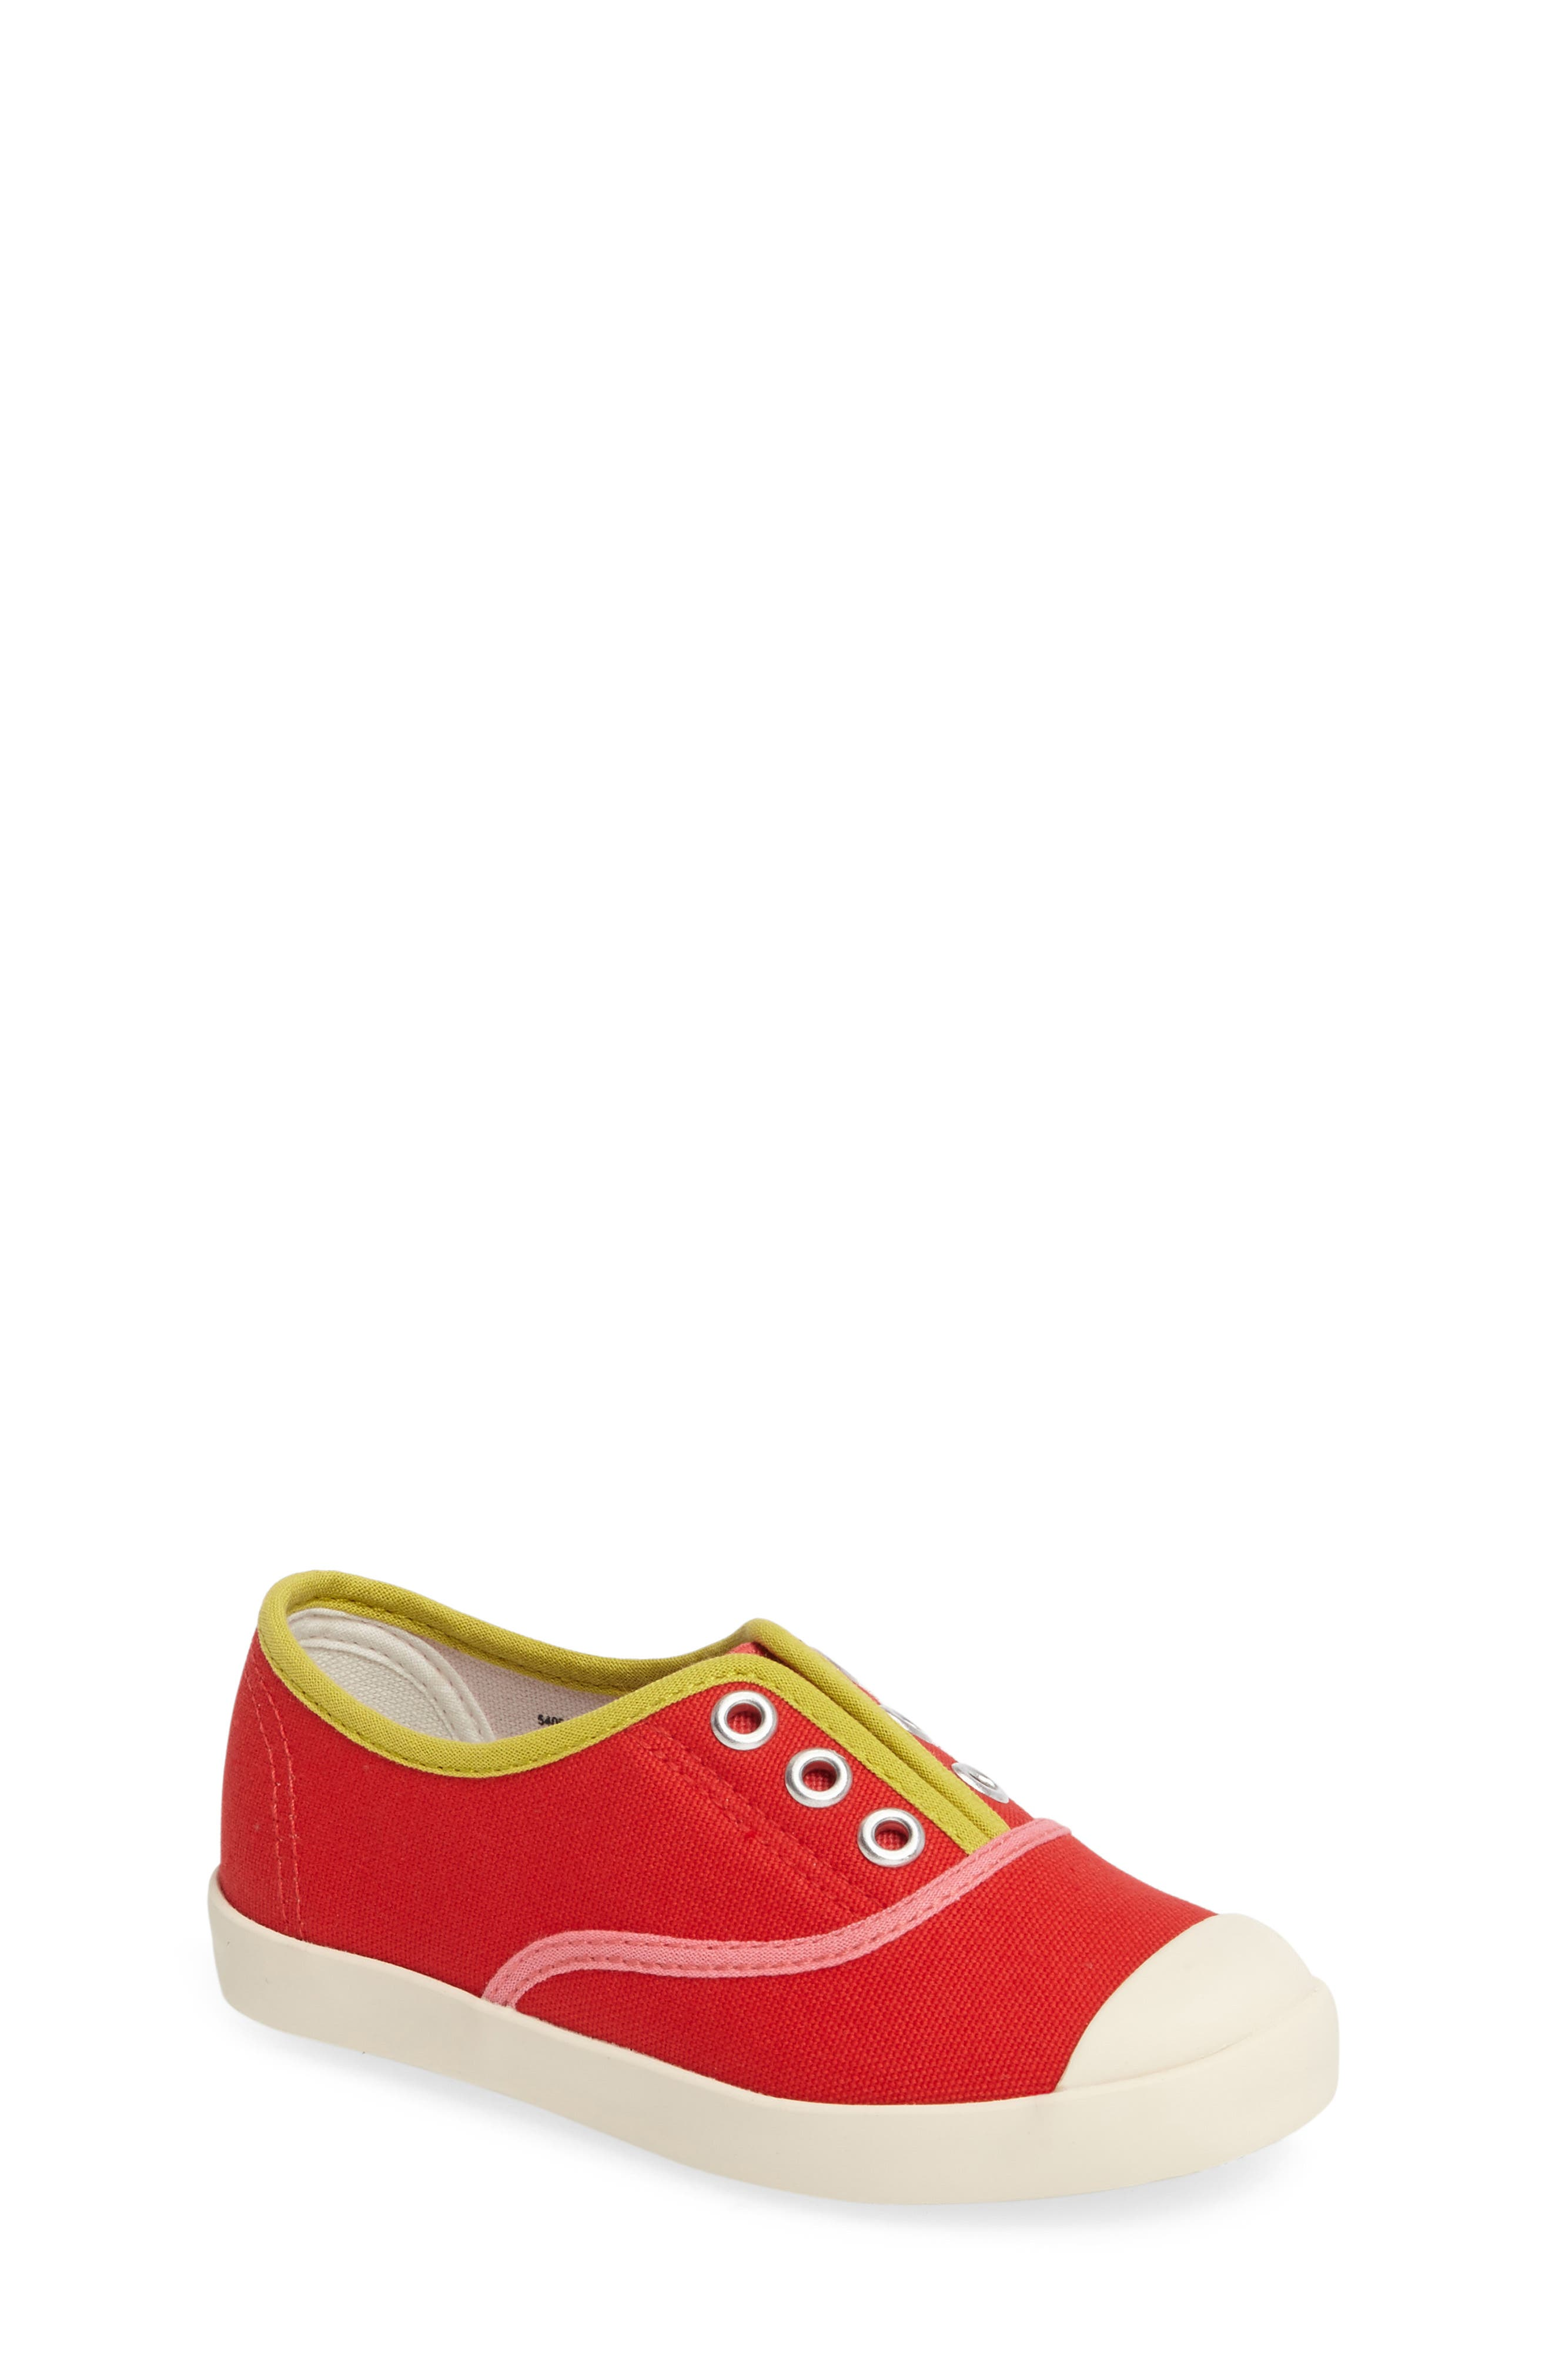 Mini Boden Laceless Slip-On Sneaker (Toddler, Little Kid & Big Kid)